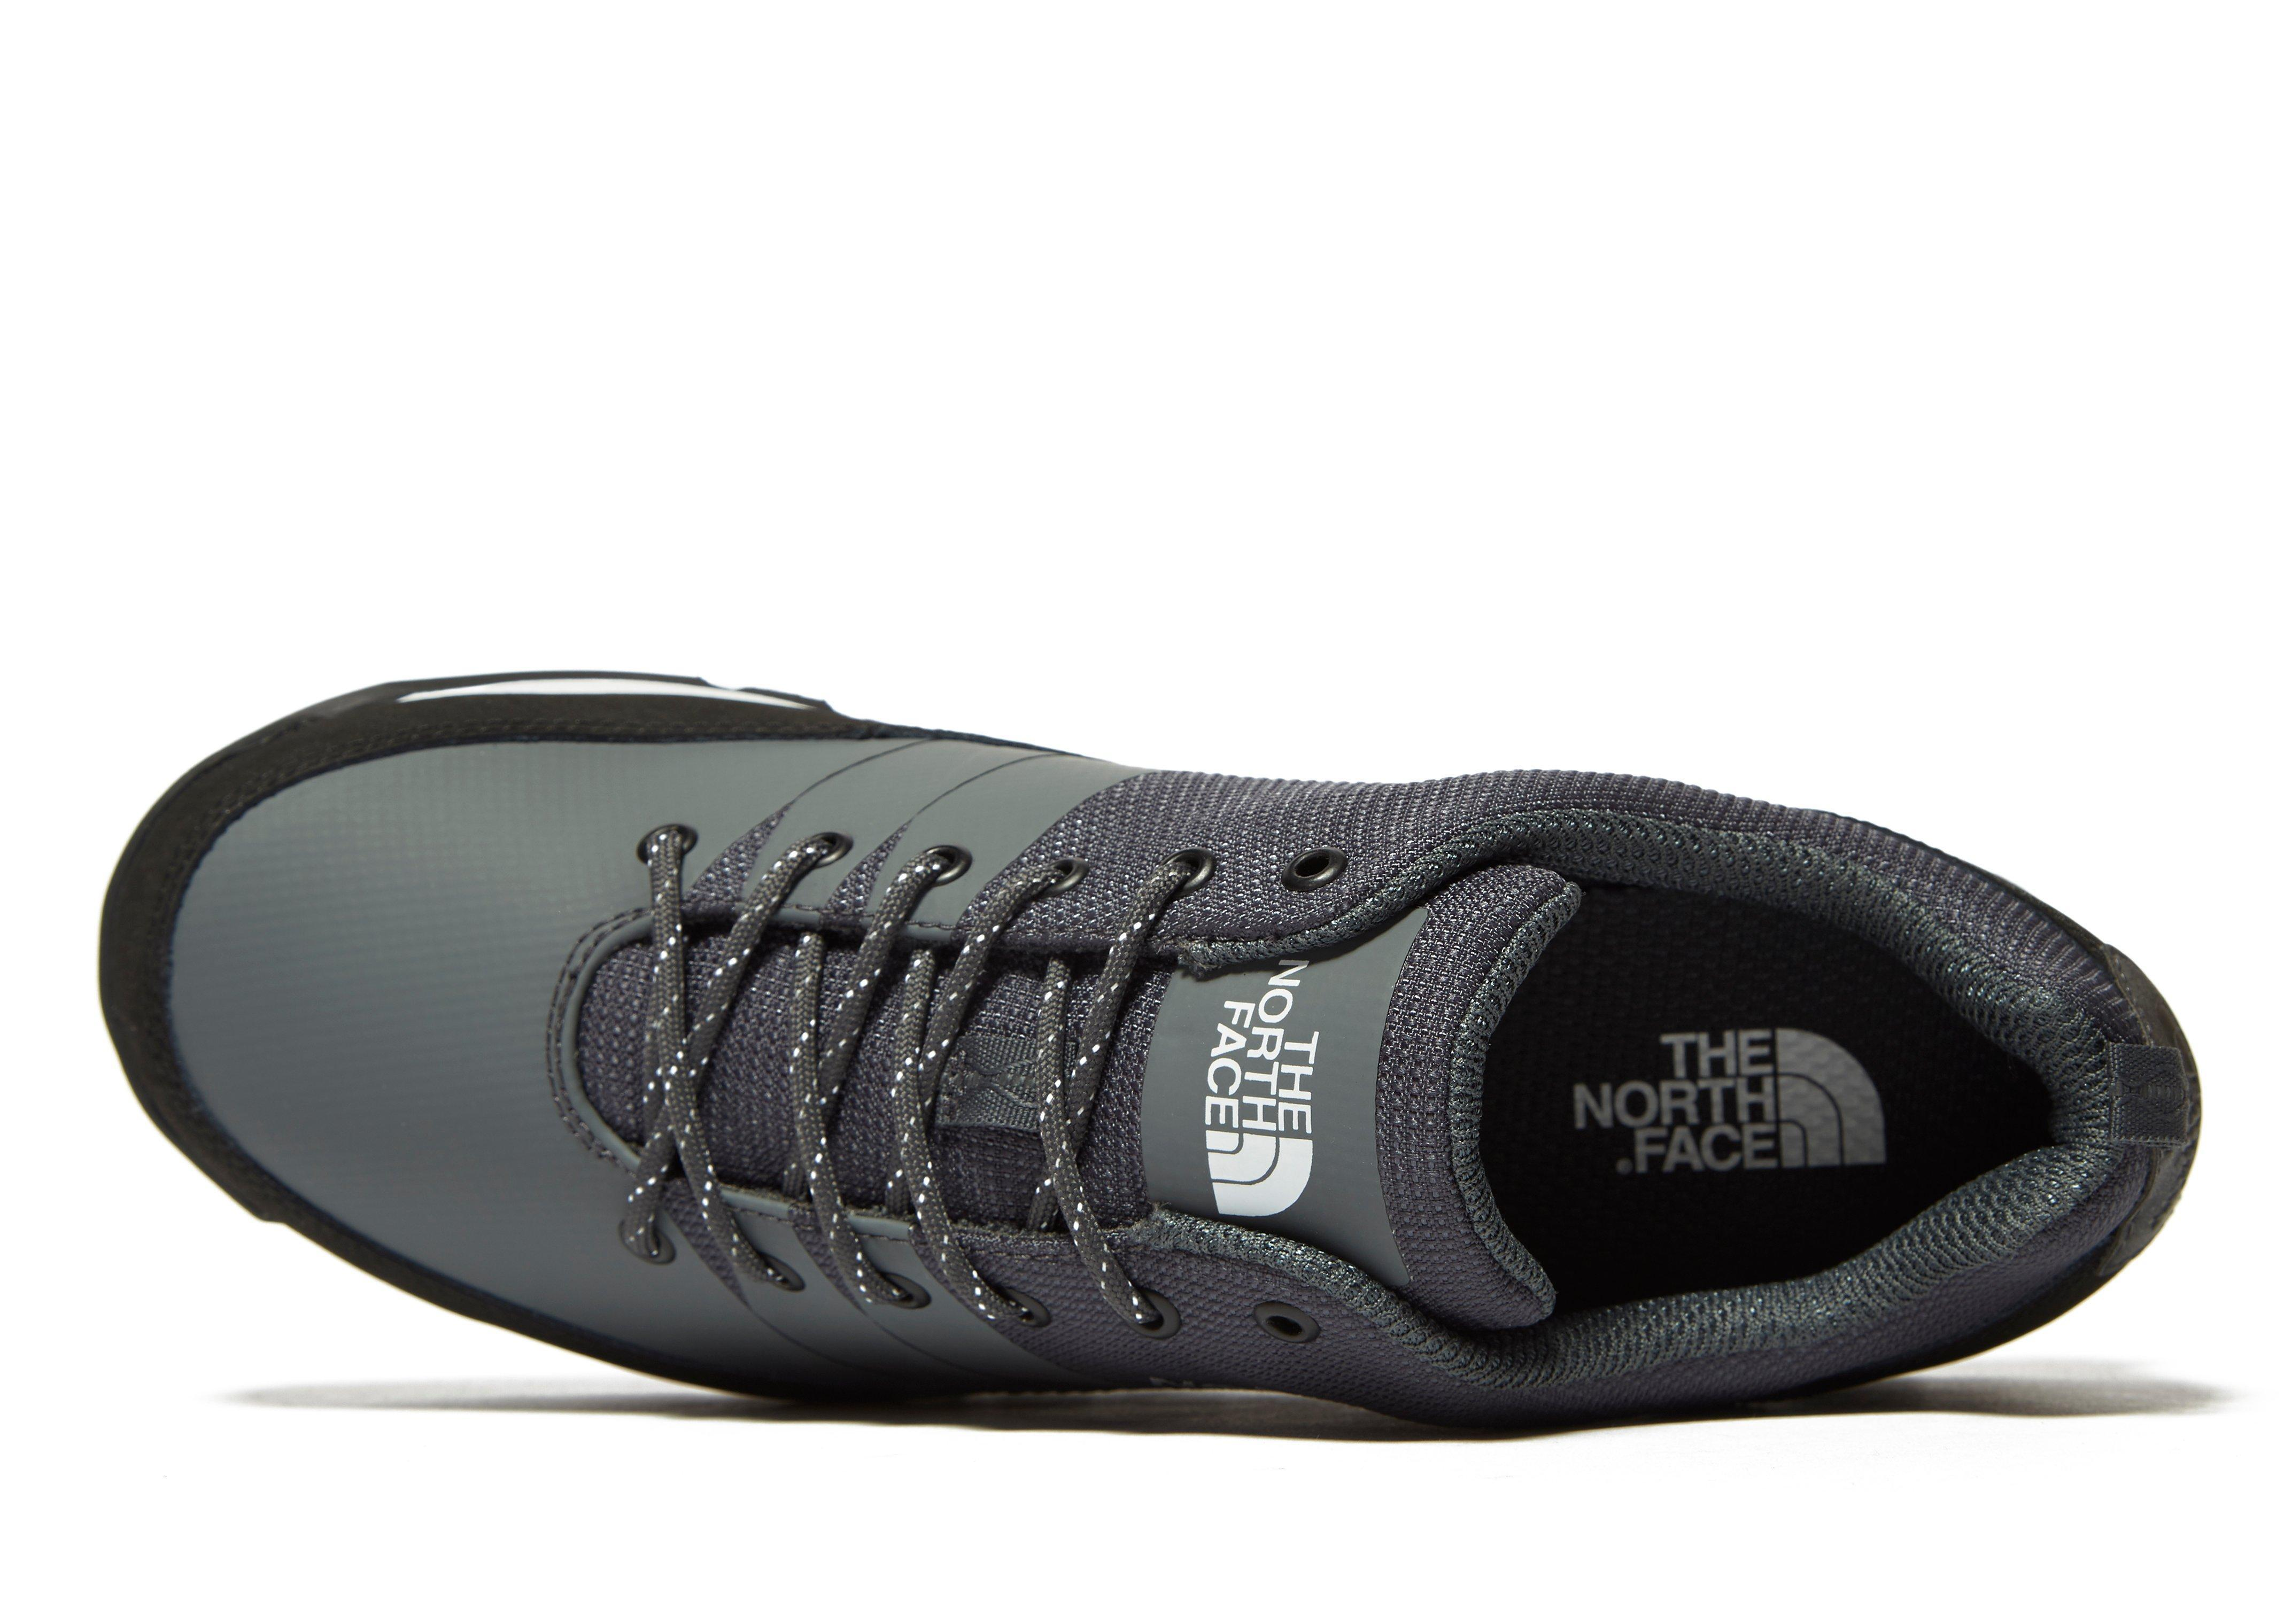 north face shoes jd Online shopping has